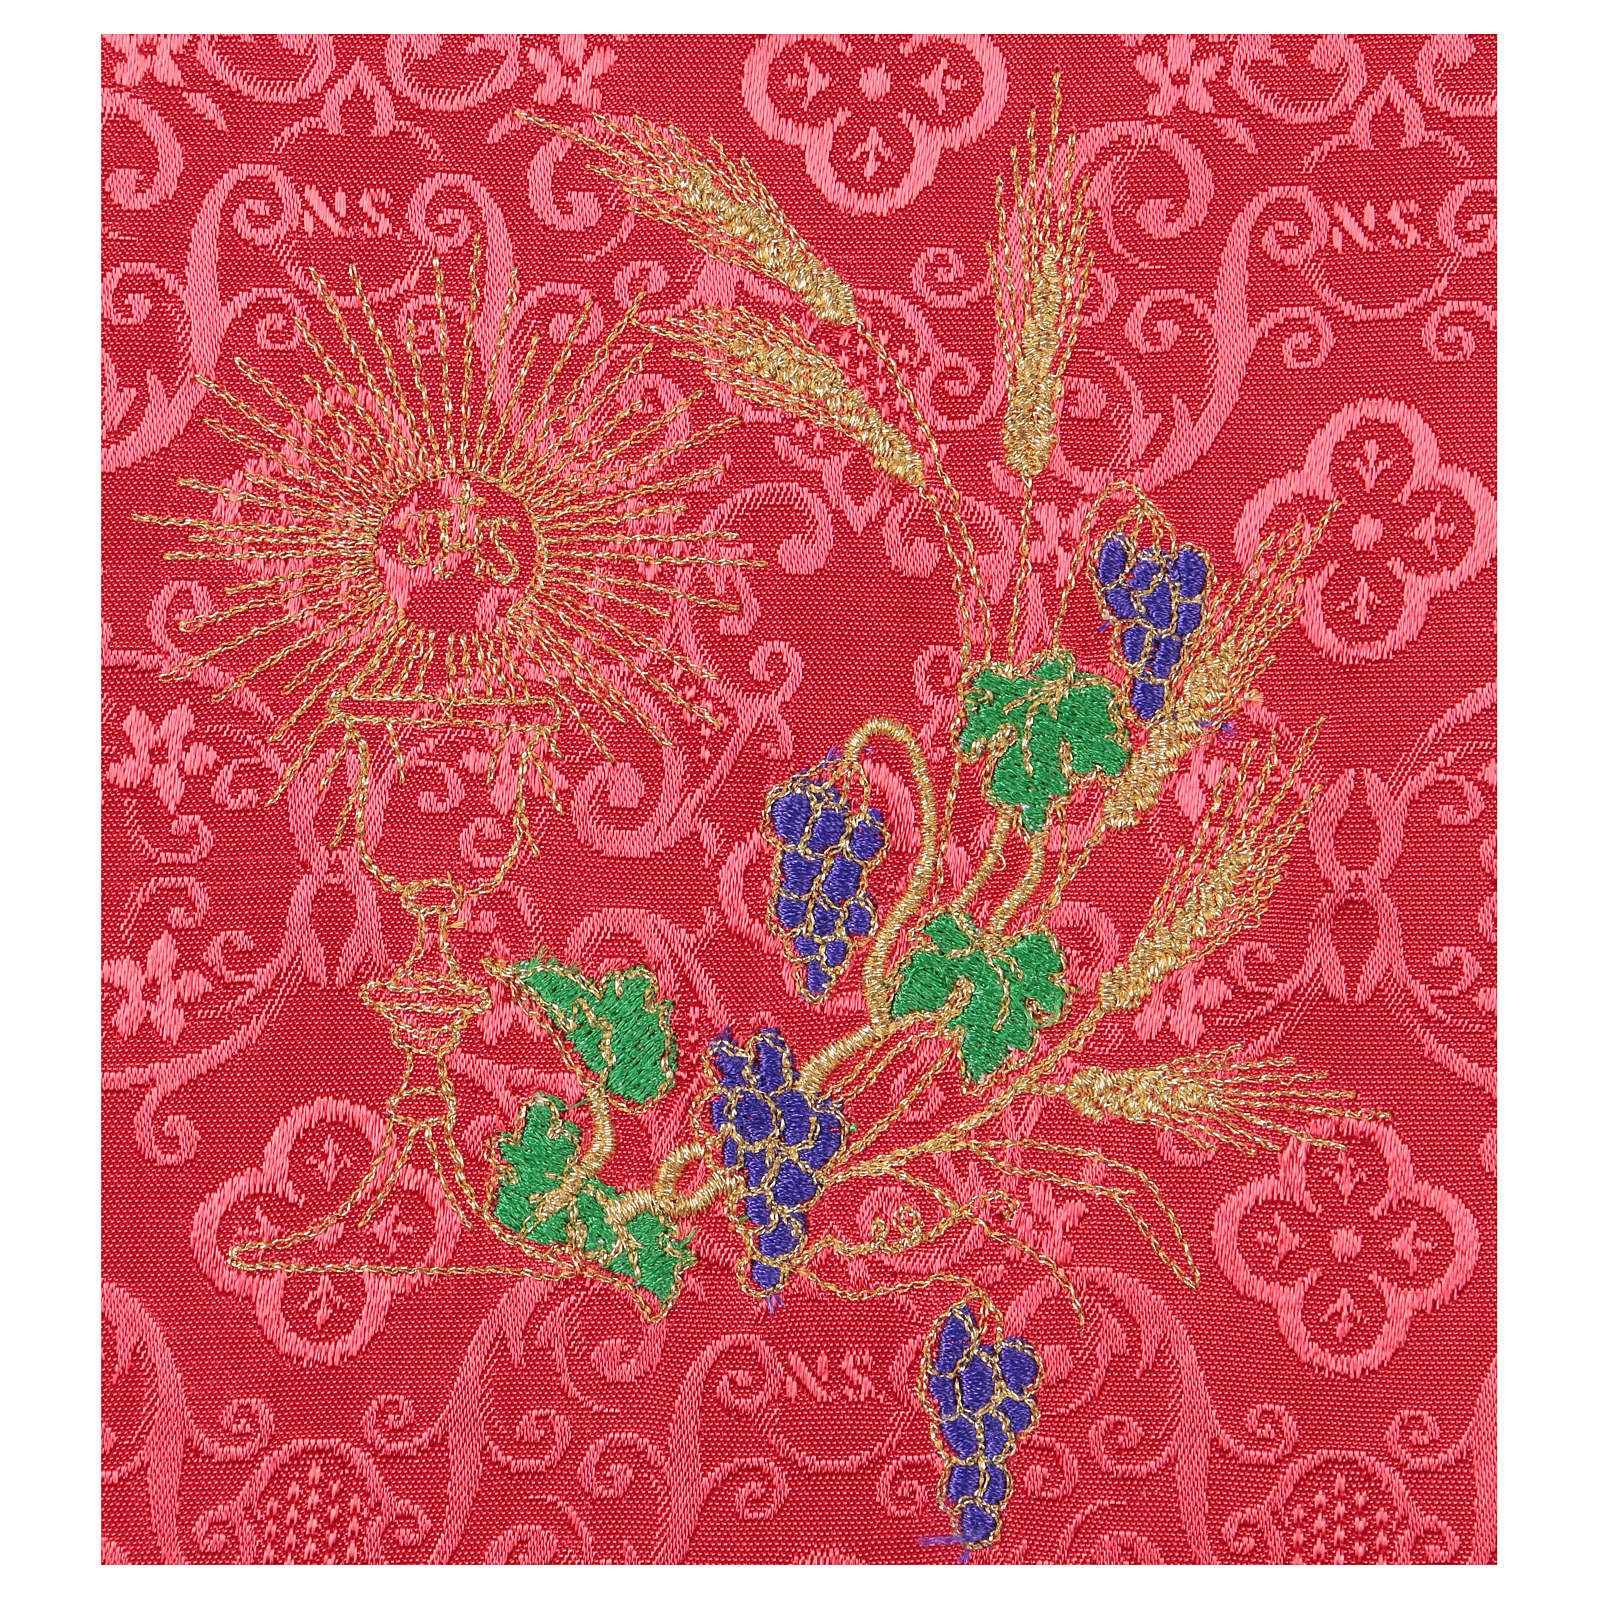 Chalice veil (pall) with chalice and grapes embroidery on red damask fabric 4